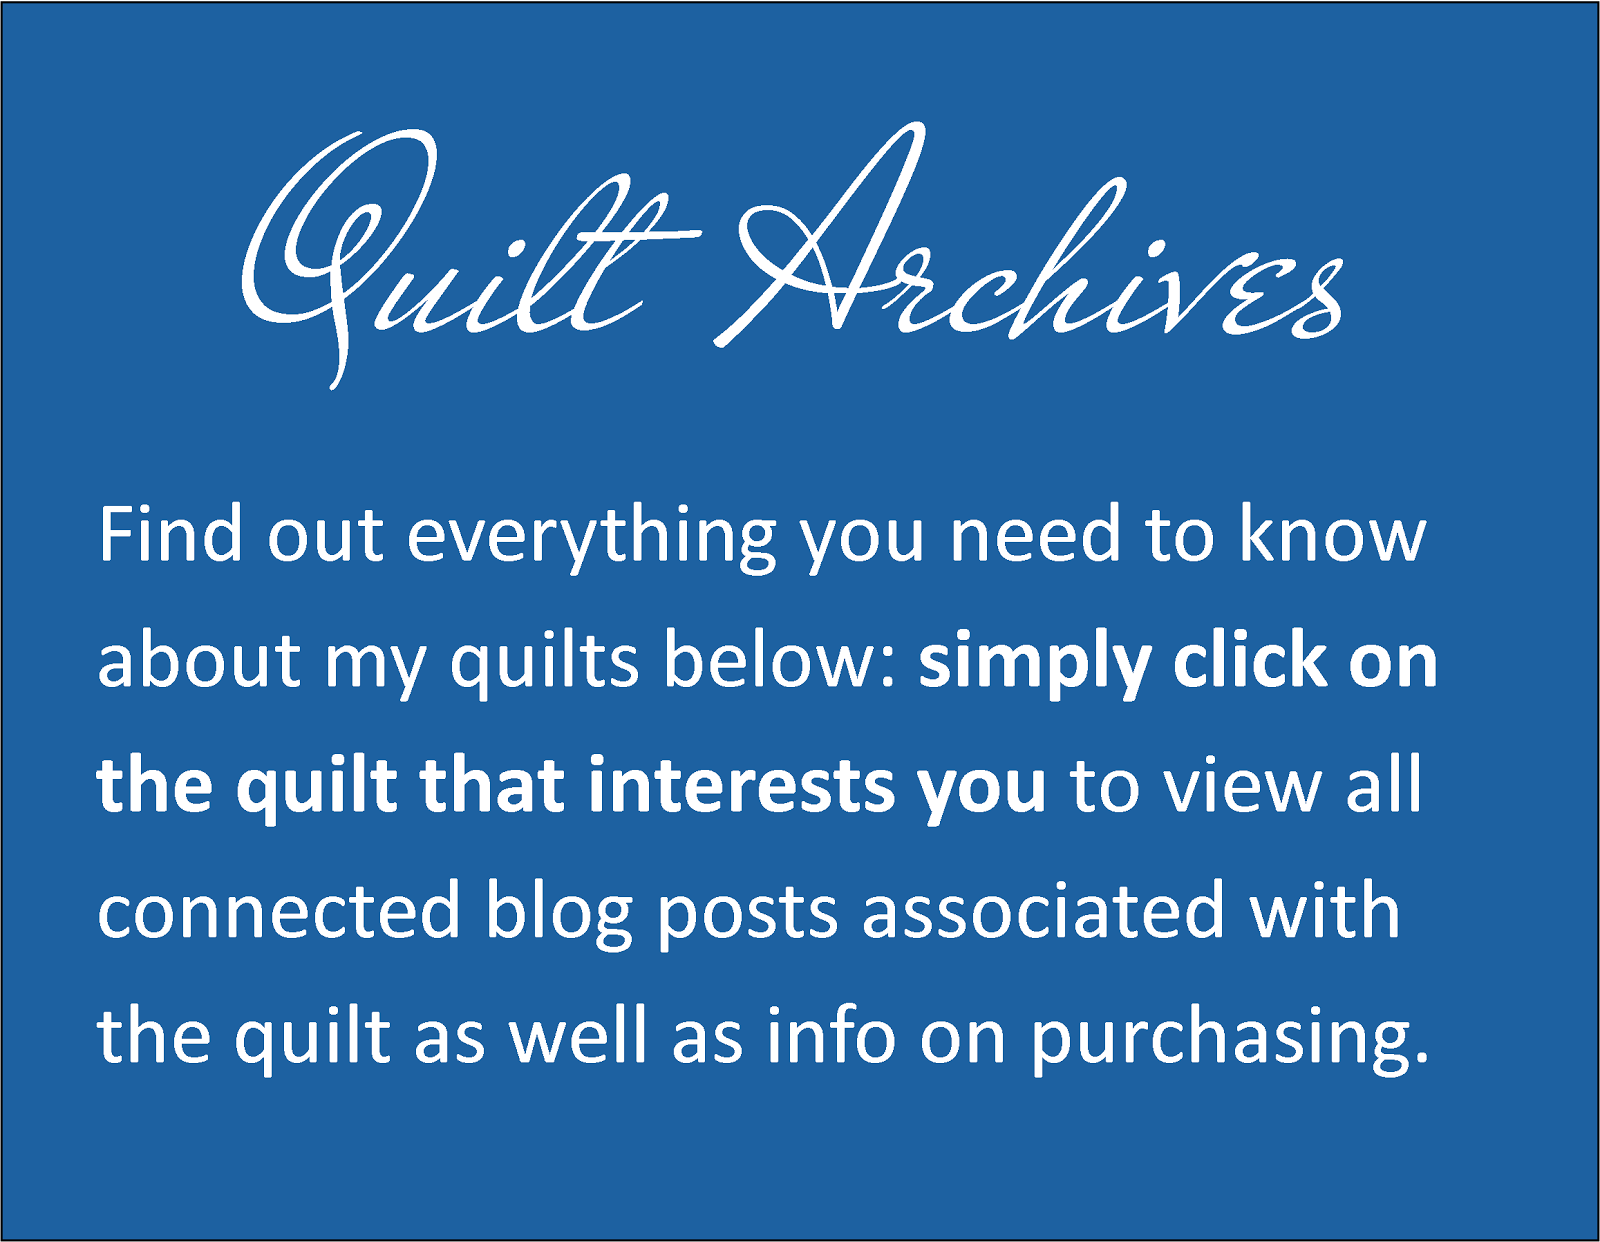 Looking for one of my quilts?